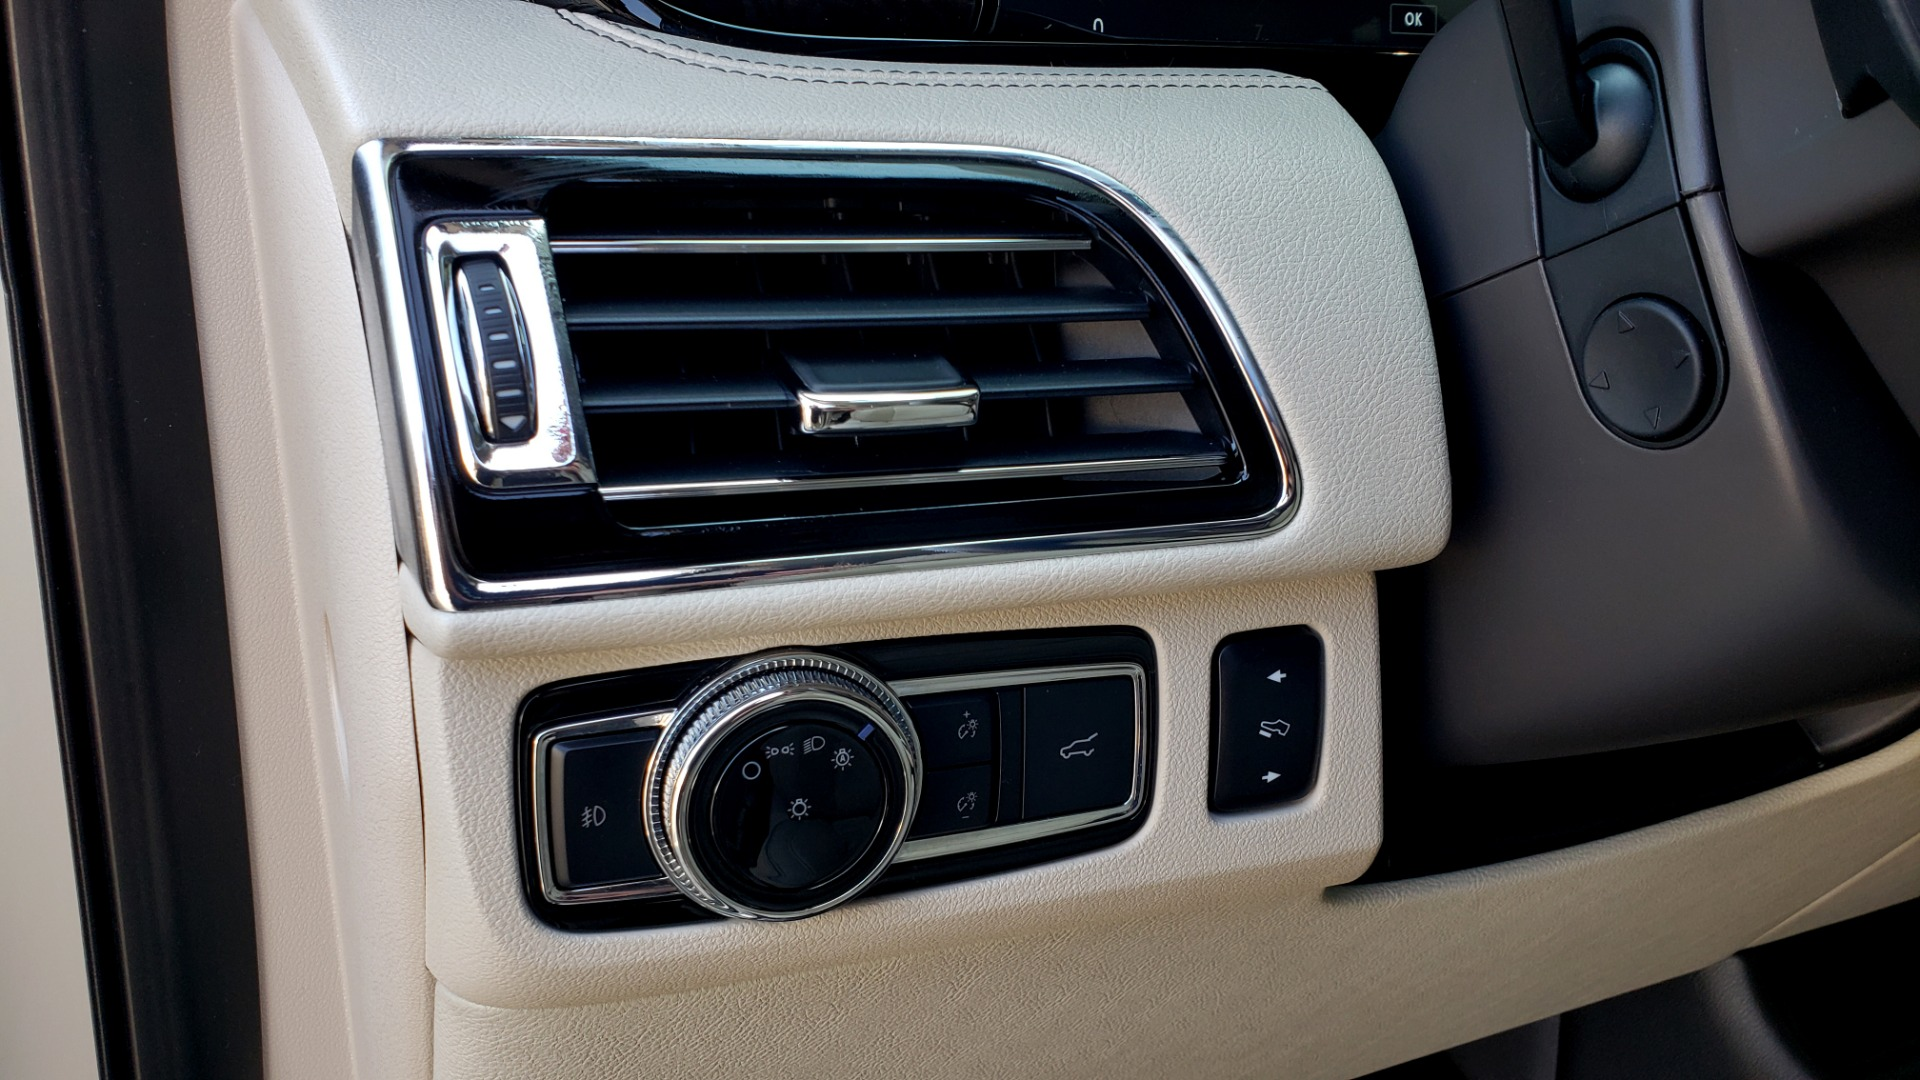 Used 2018 Lincoln NAVIGATOR PREMIERE 4X2 / TWIN-TURBO V6 / NAV / 3-ROW / REARVIEW for sale Sold at Formula Imports in Charlotte NC 28227 44